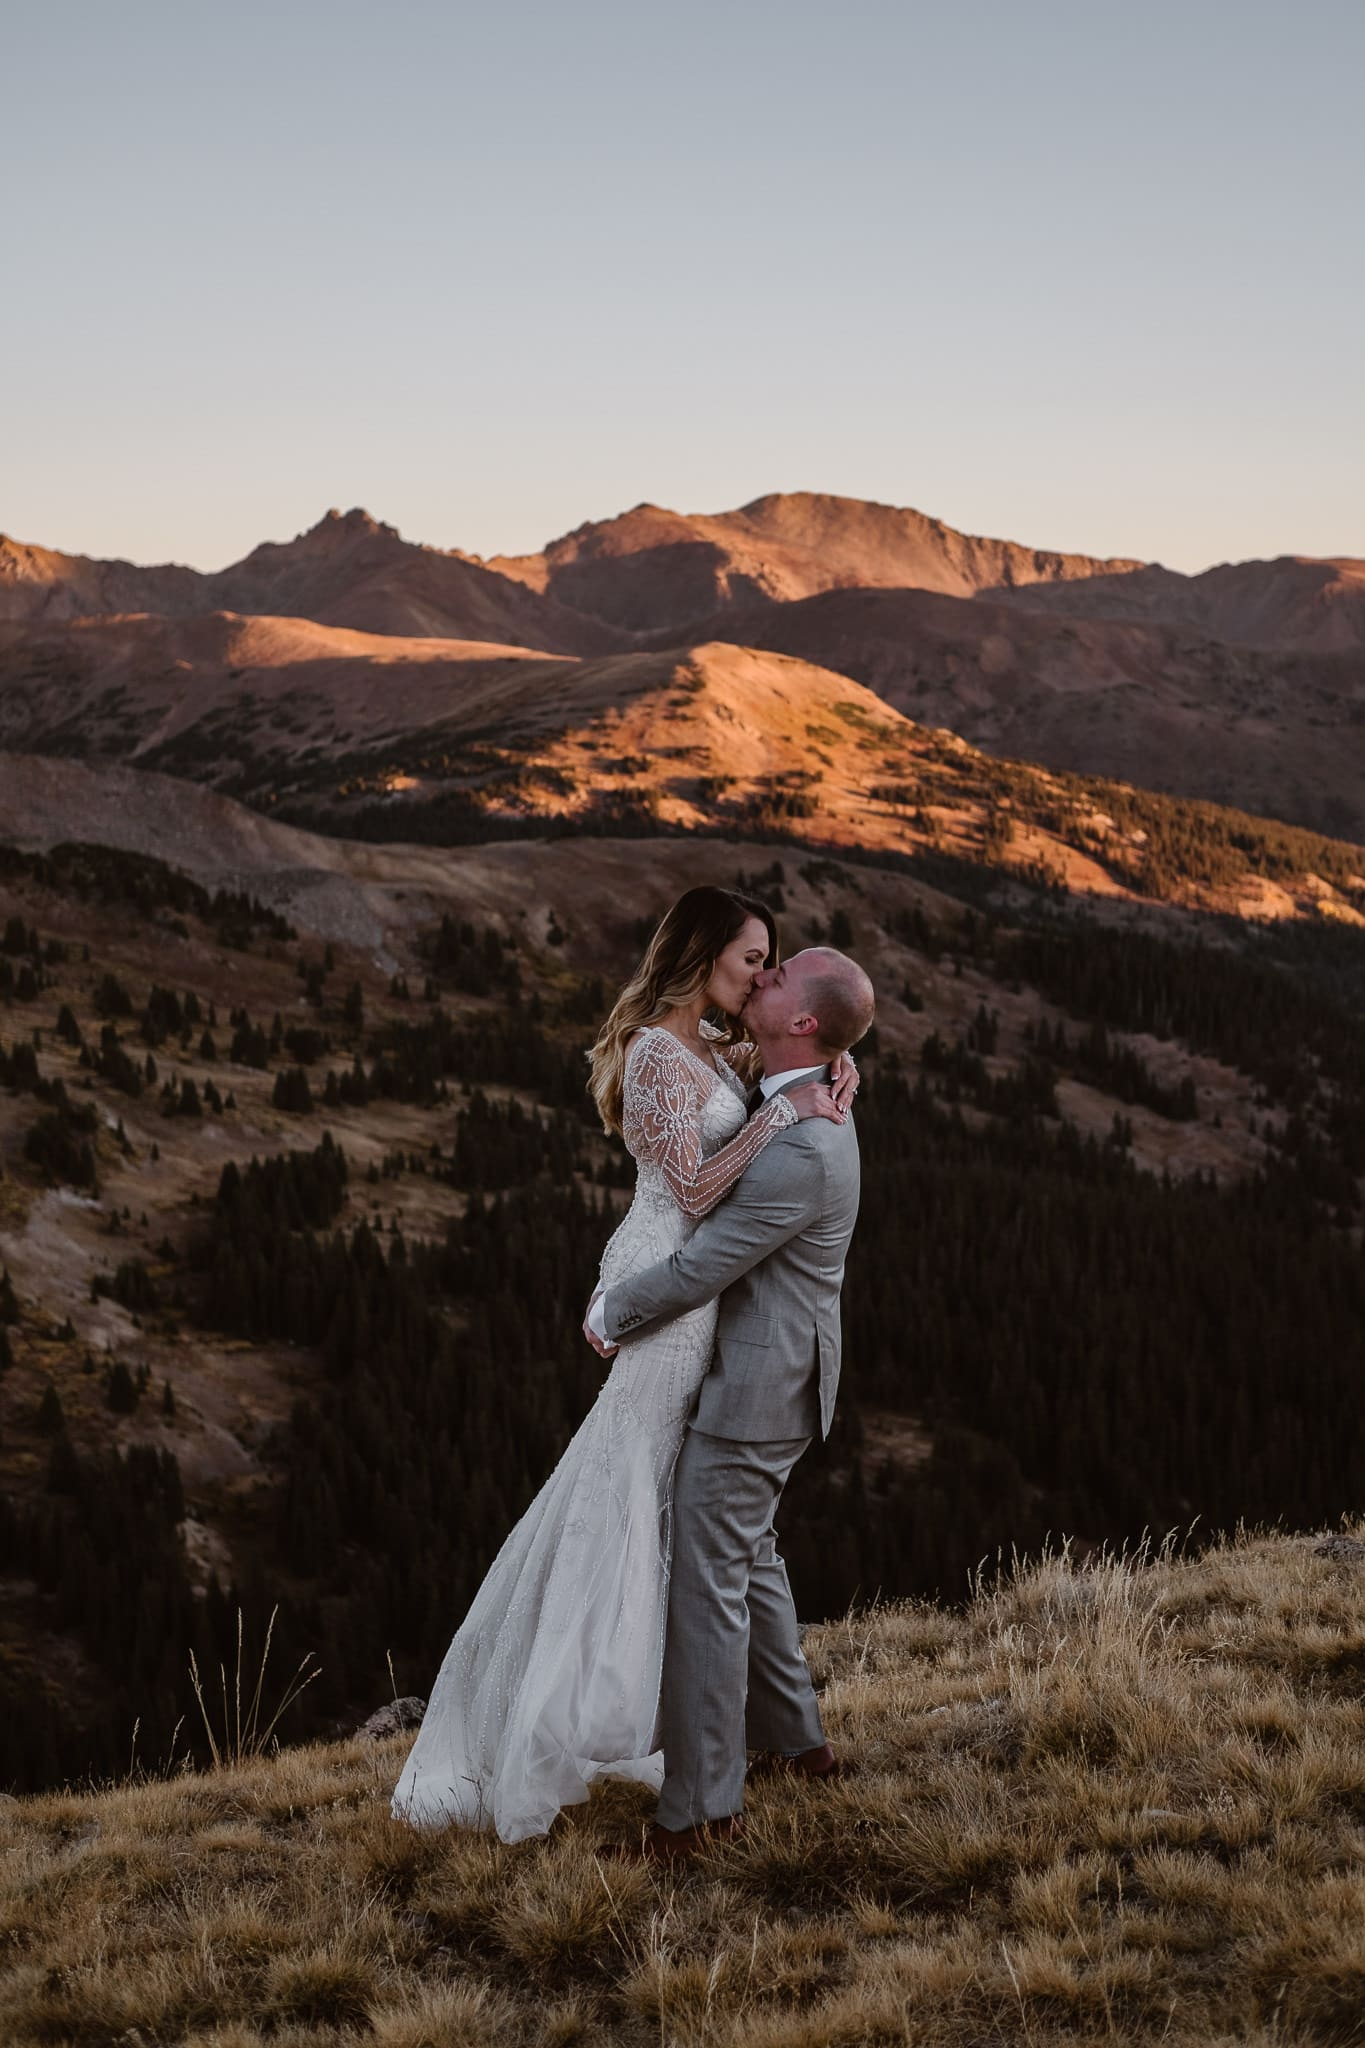 Sunrise hiking elopement, Colorado elopement photographer, mountain elopement, Loveland Pass, Colorado intimate wedding photographer, Summit County wedding photographer, bride and groom hiking, alpenglow wedding photos